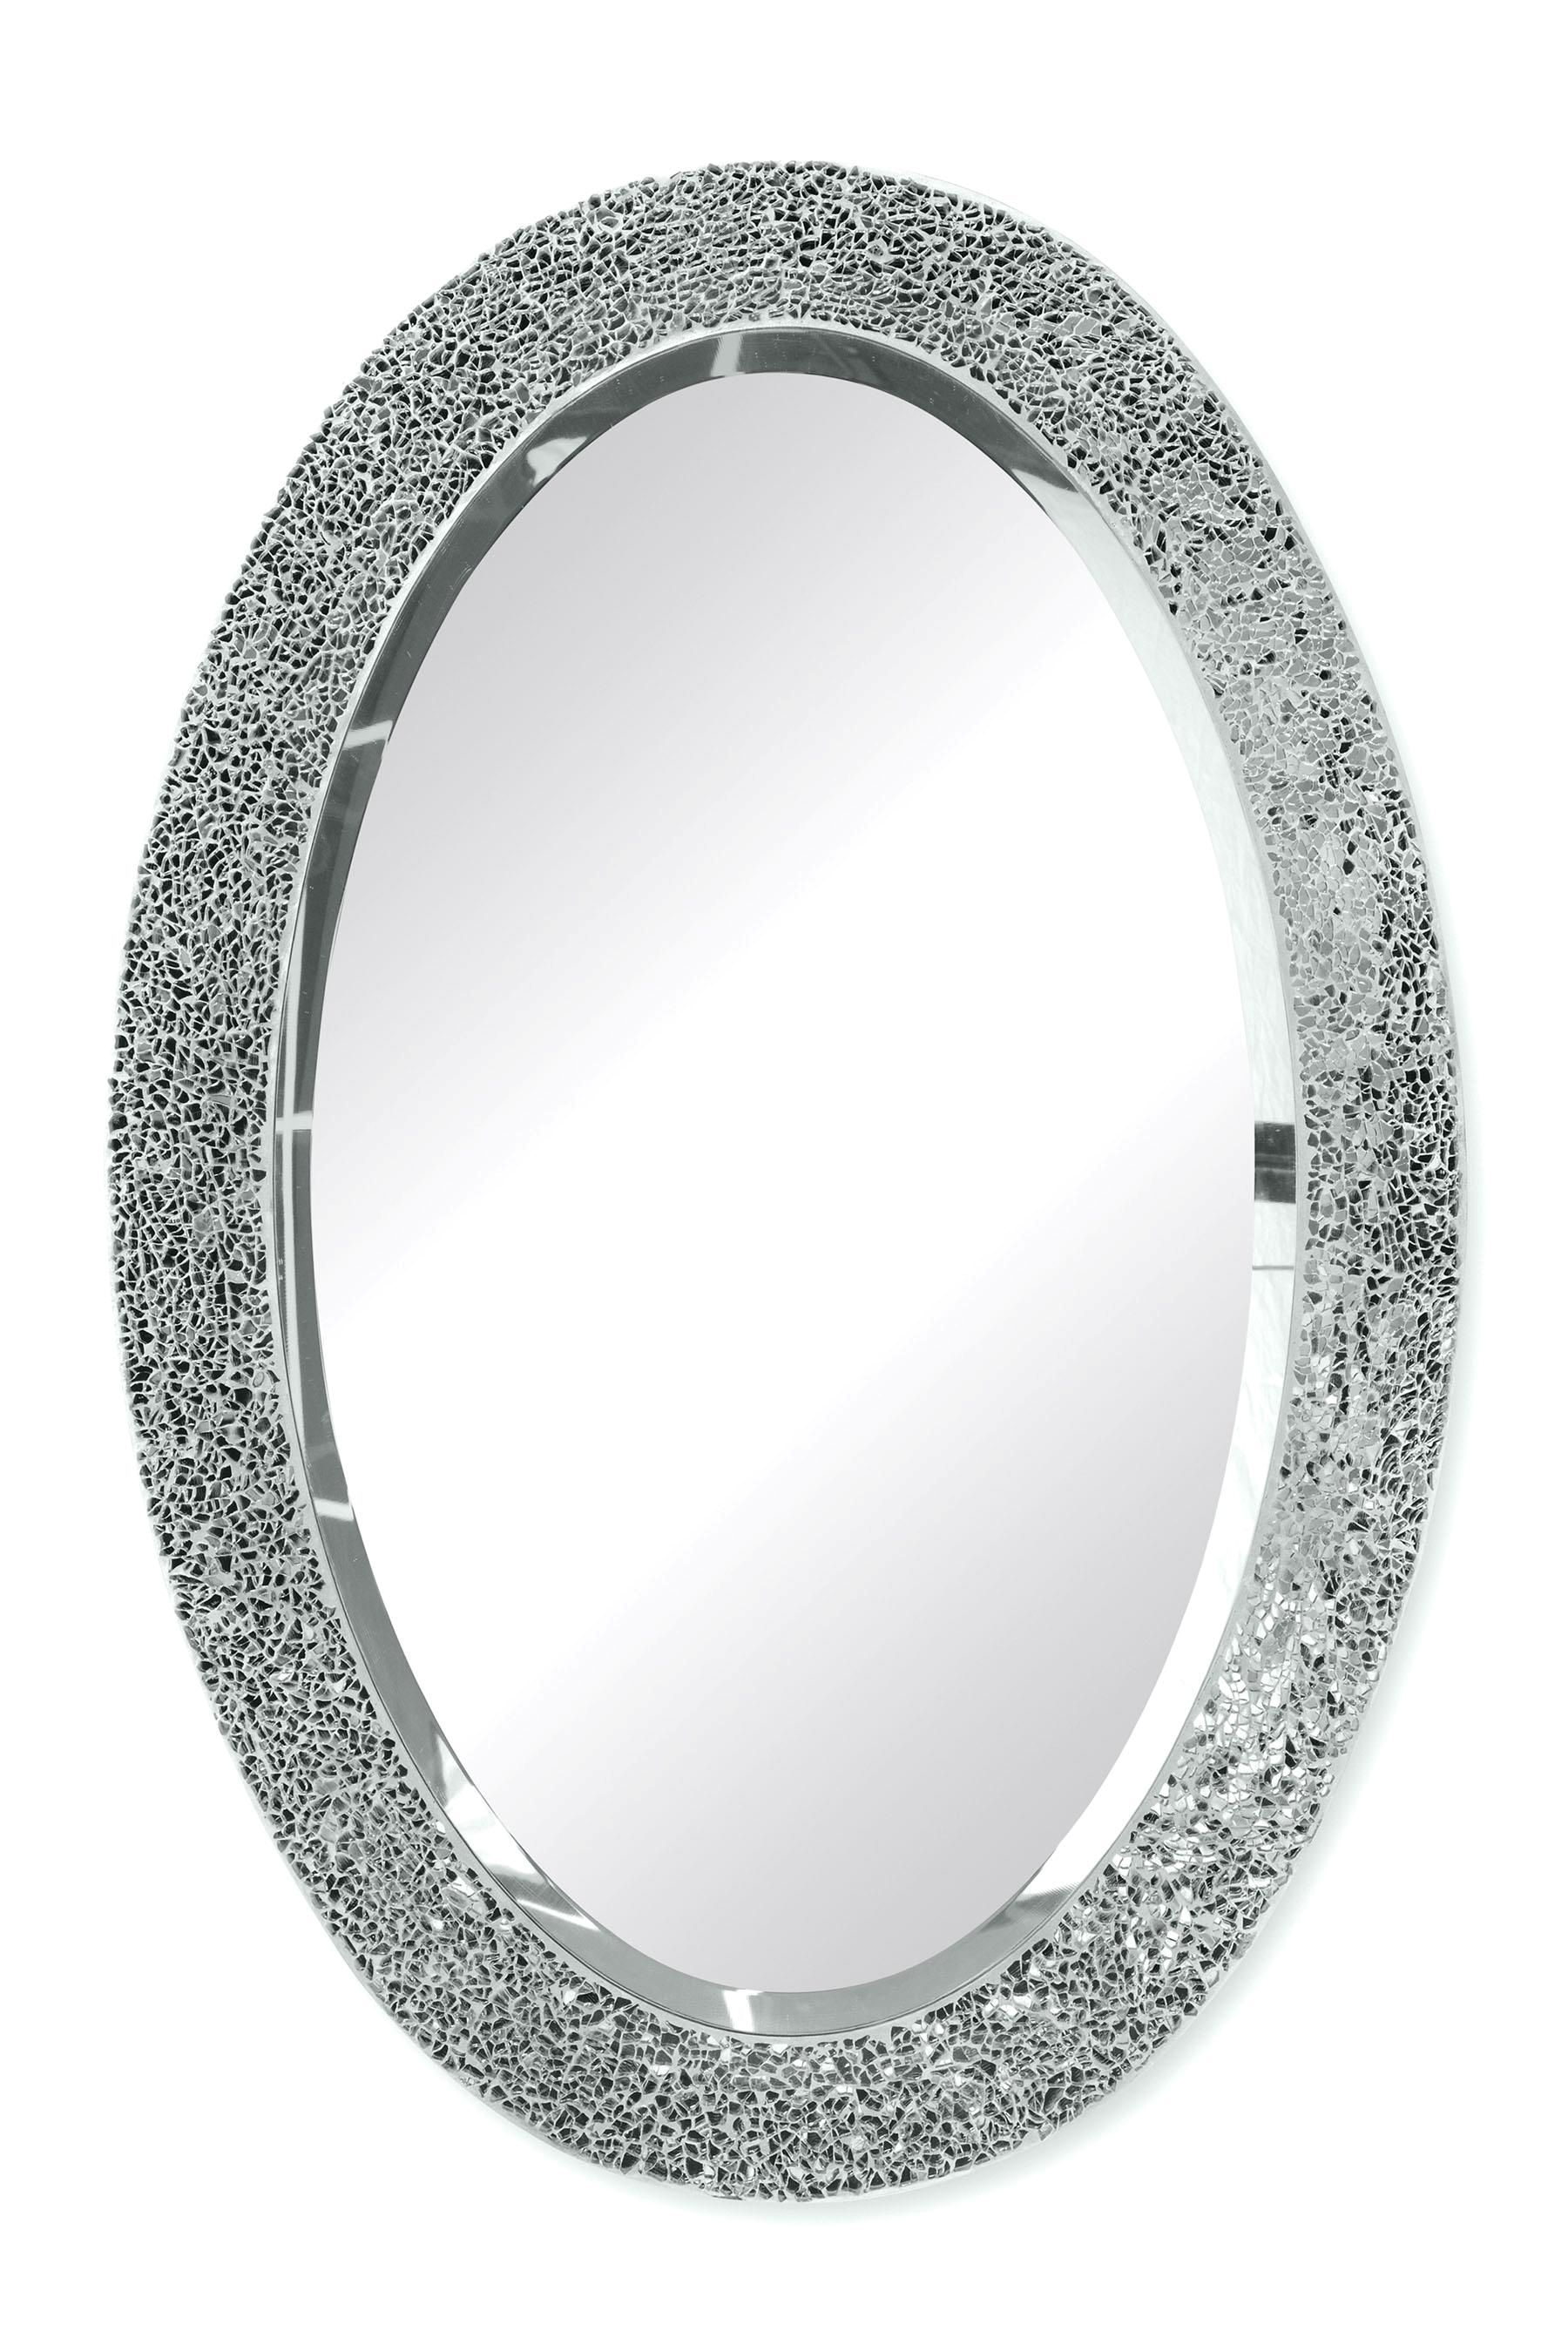 Spiegel Online Shop Buy Silver Coloured Sparkle Oval Mirror From The Next Uk Online